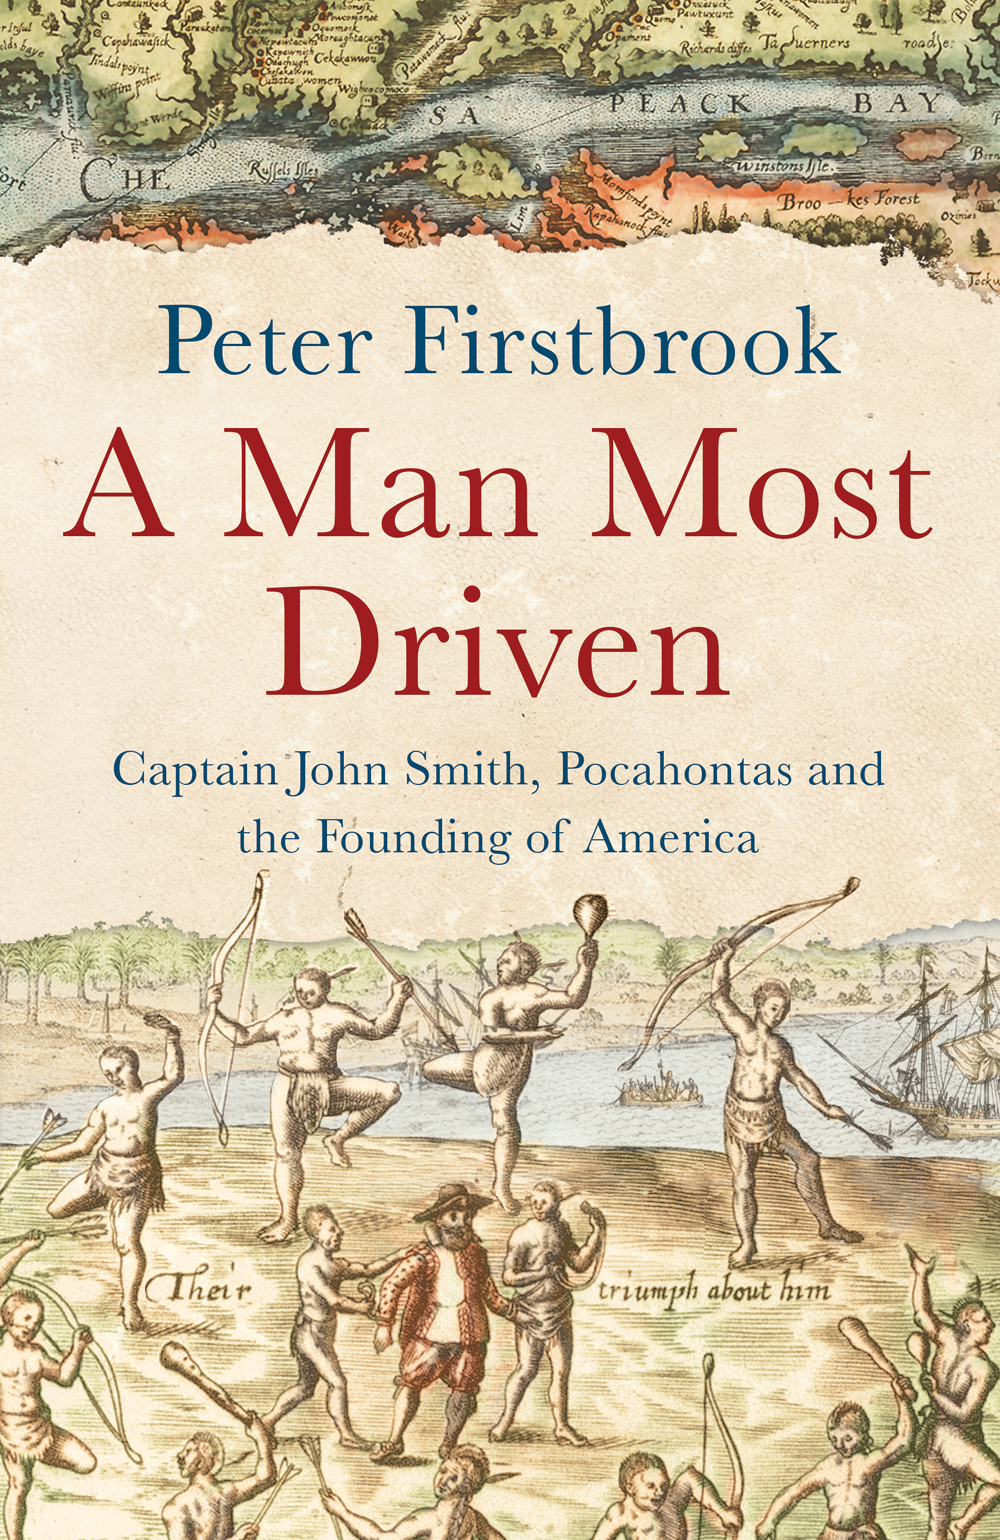 """A Man Most Driven"" by Peter Firstbrook, cover page"